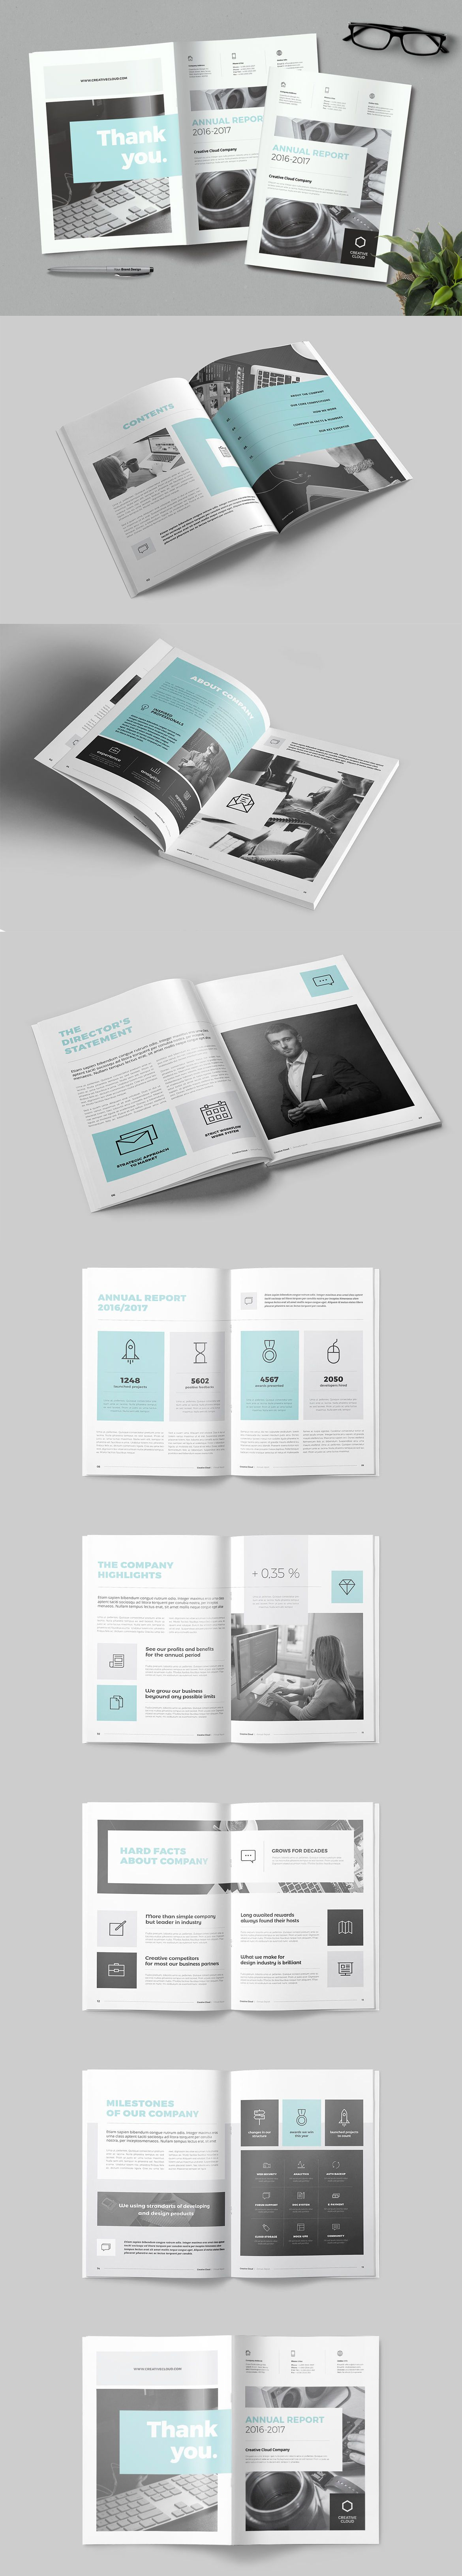 Annual Report Brochure Template Indesign Indd  Layout Design